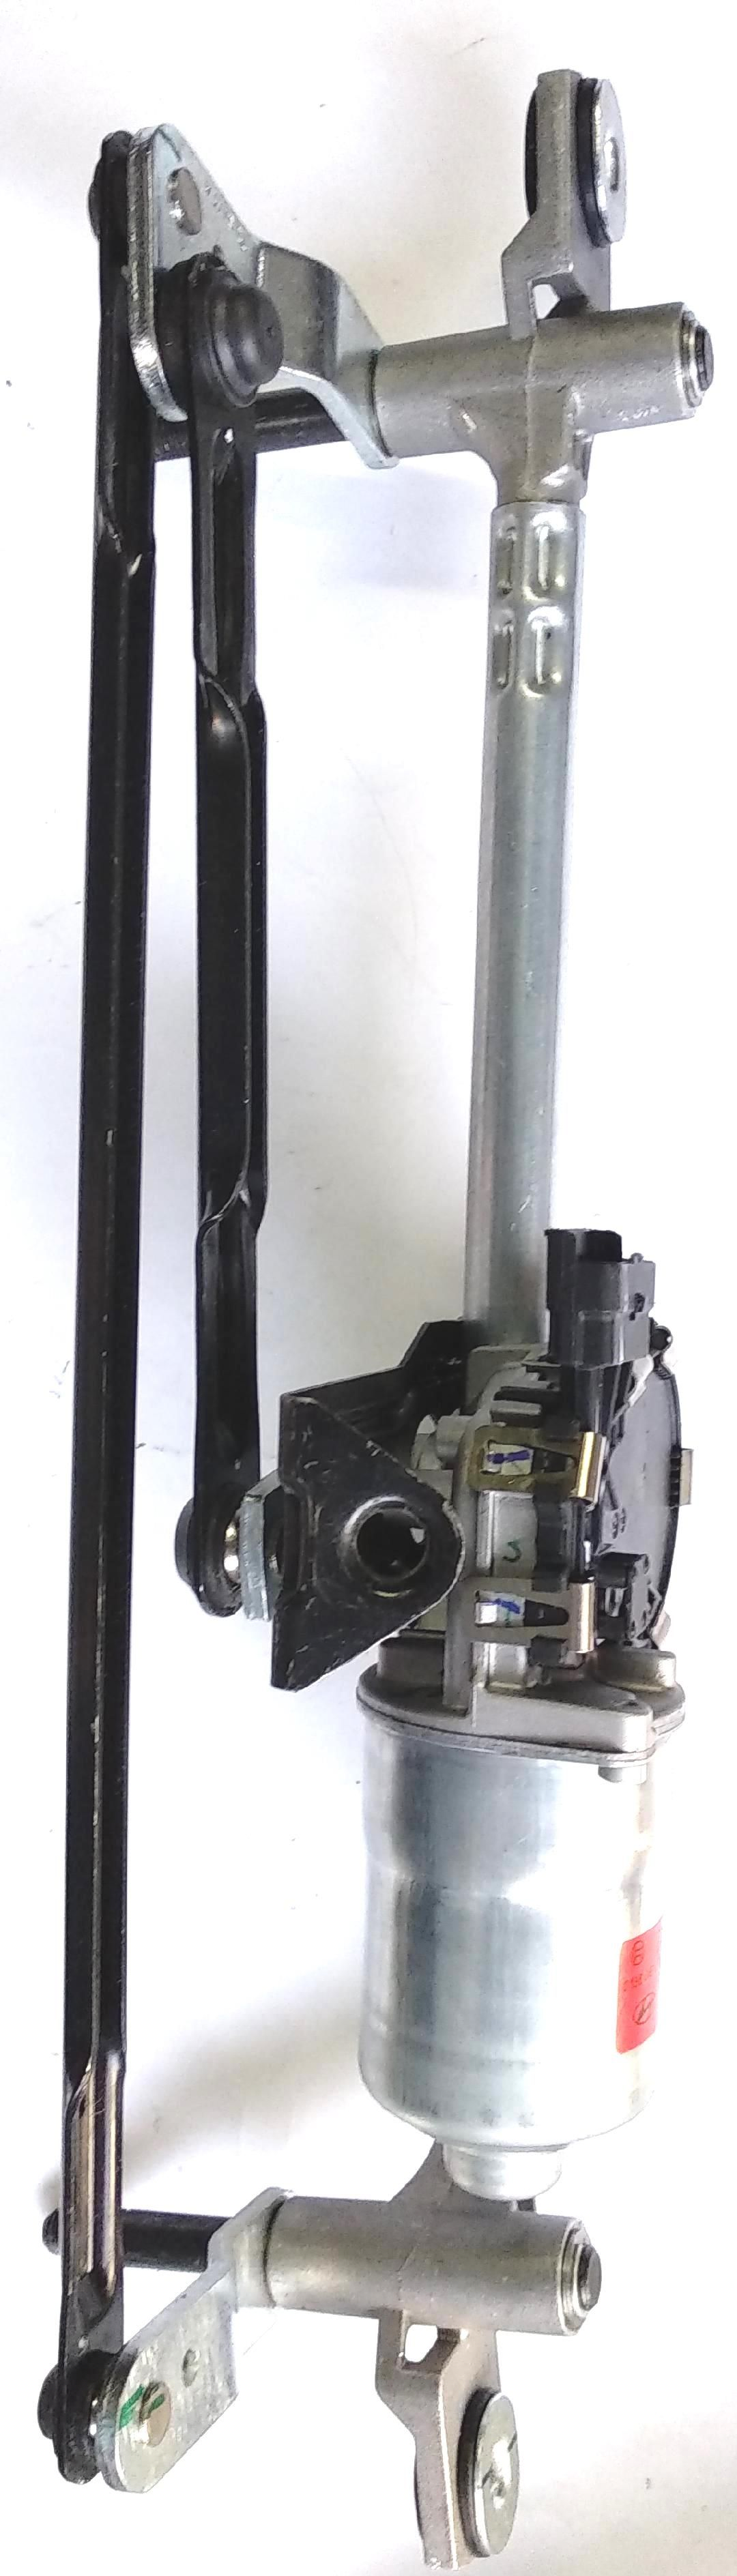 WIPER LINKAGE ASSEMBLY WITH MOTOR FOR HYUNDAI i20 (LATEST)